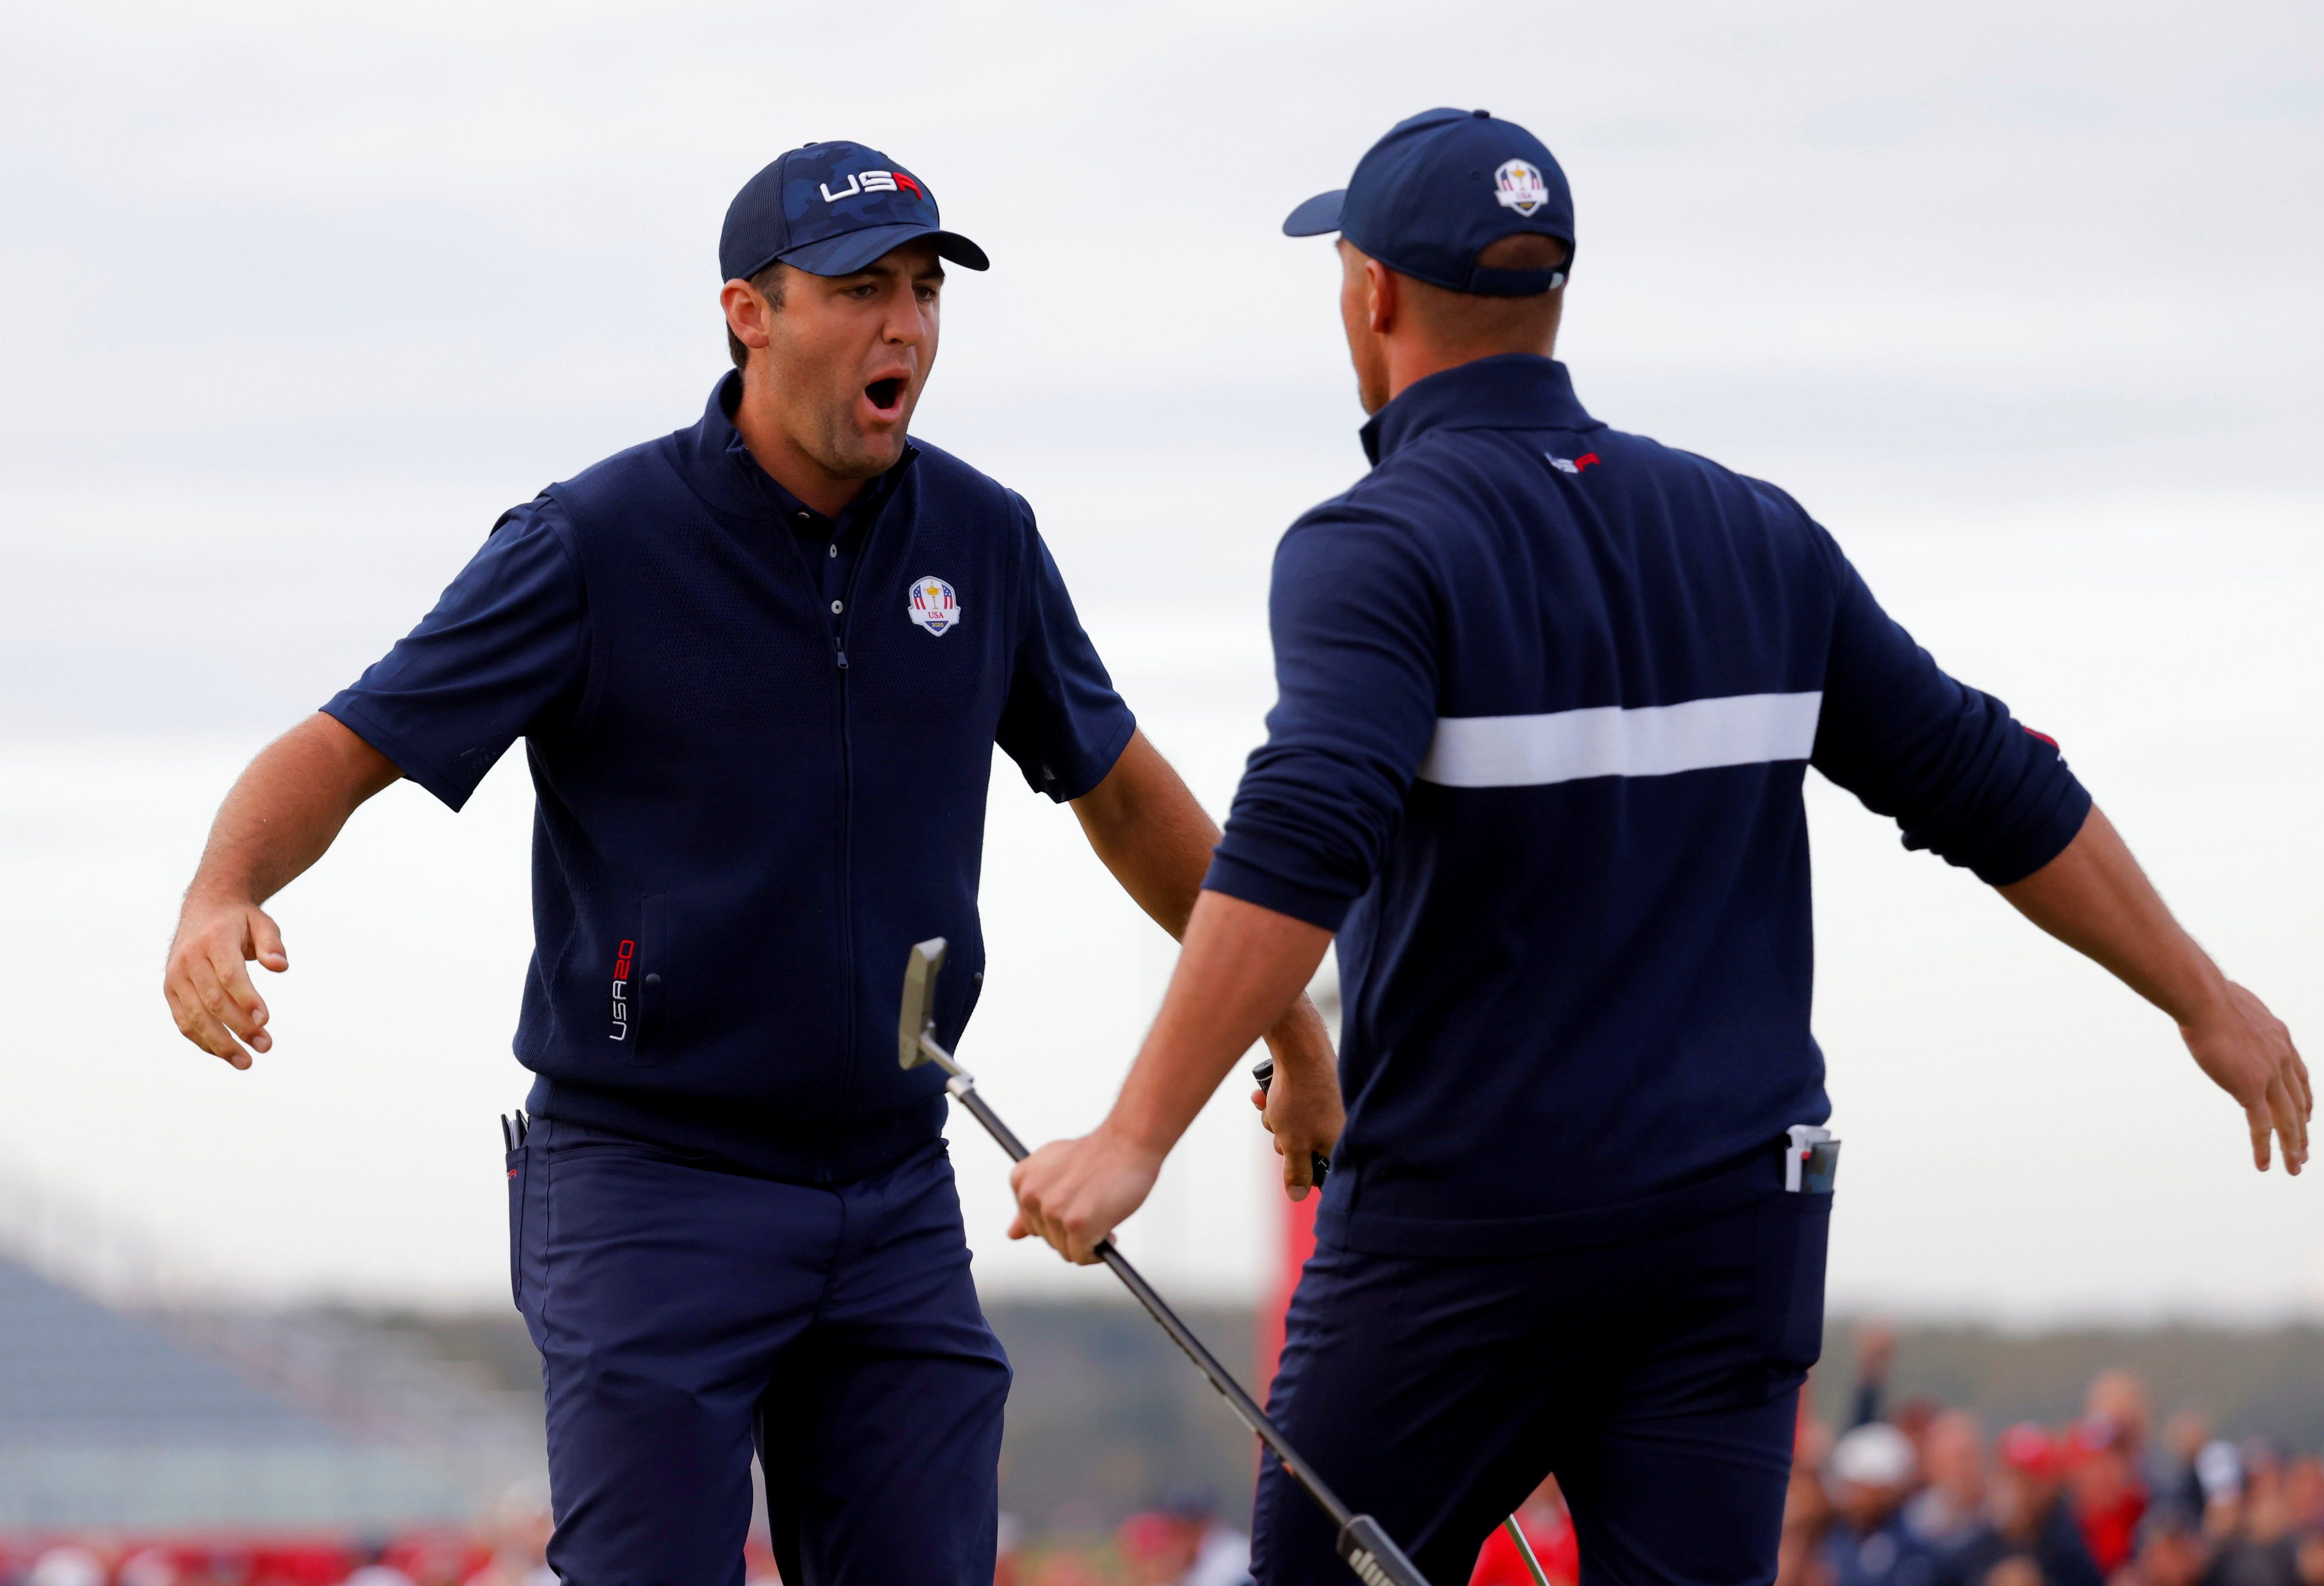 Golf - The 2020 Ryder Cup - Whistling Straits, Sheboygan, Wisconsin, U.S. - September 25, 2021 Team USA's Scottie Scheffler reacts with Team USA's Bryson DeChambeau after holing his putt on the 15th green to win the hole during the Four-balls REUTERS/Mike Segar     TPX IMAGES OF THE DAY